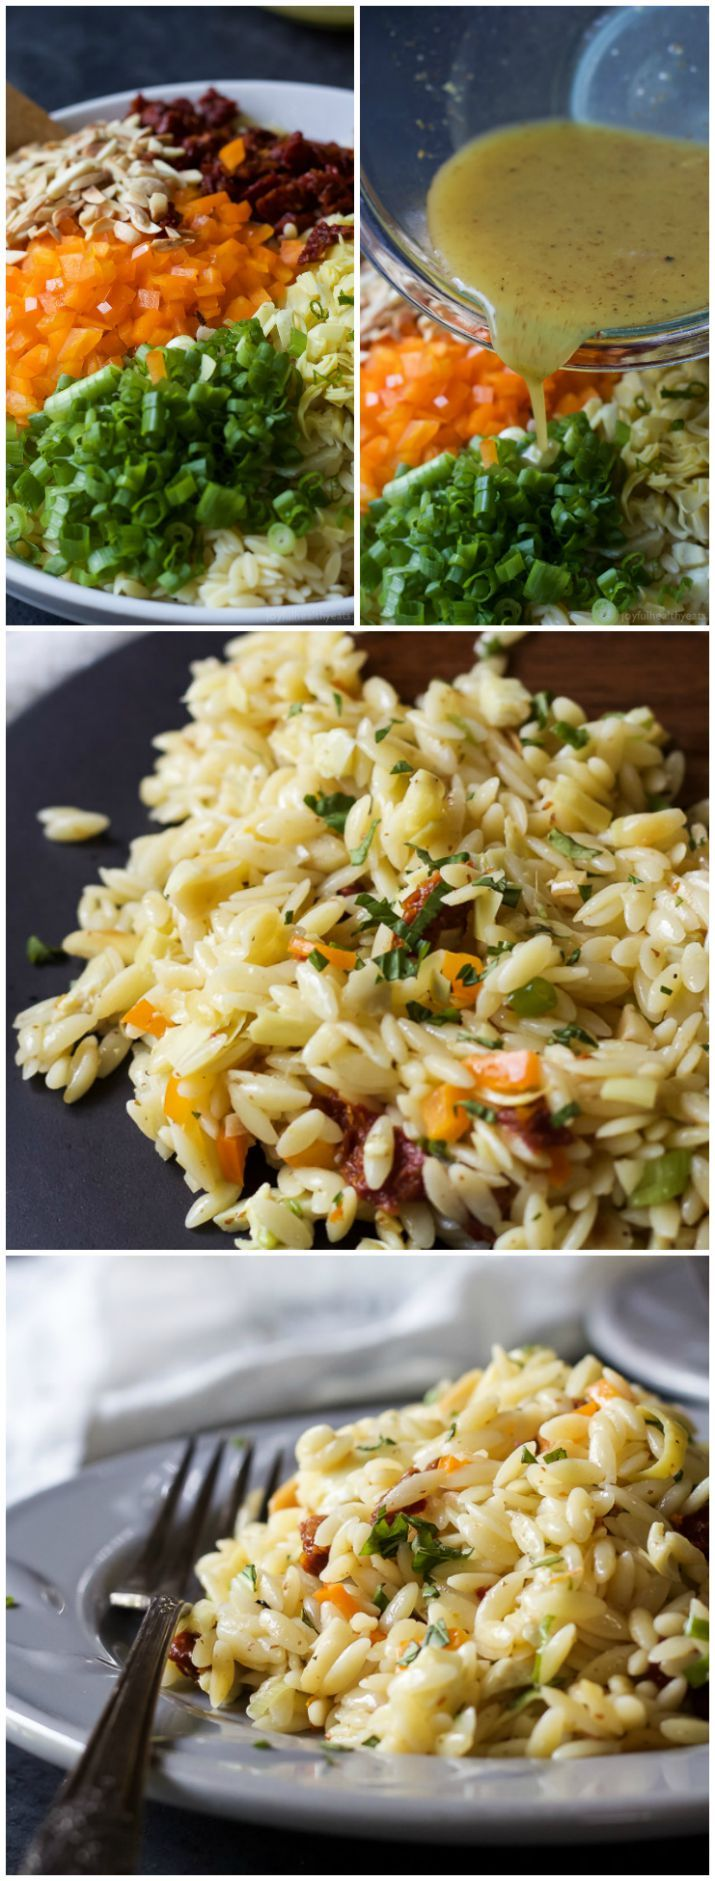 Mediterranean Orzo Salad filled with artichokes, sun-dried tomatoes, toasted almonds, and a white balsamic vinaigrette that will make you swoon! A great salad to serve with fresh seafood or grilled chicken. | joyfulhealthyeats.com #recipes